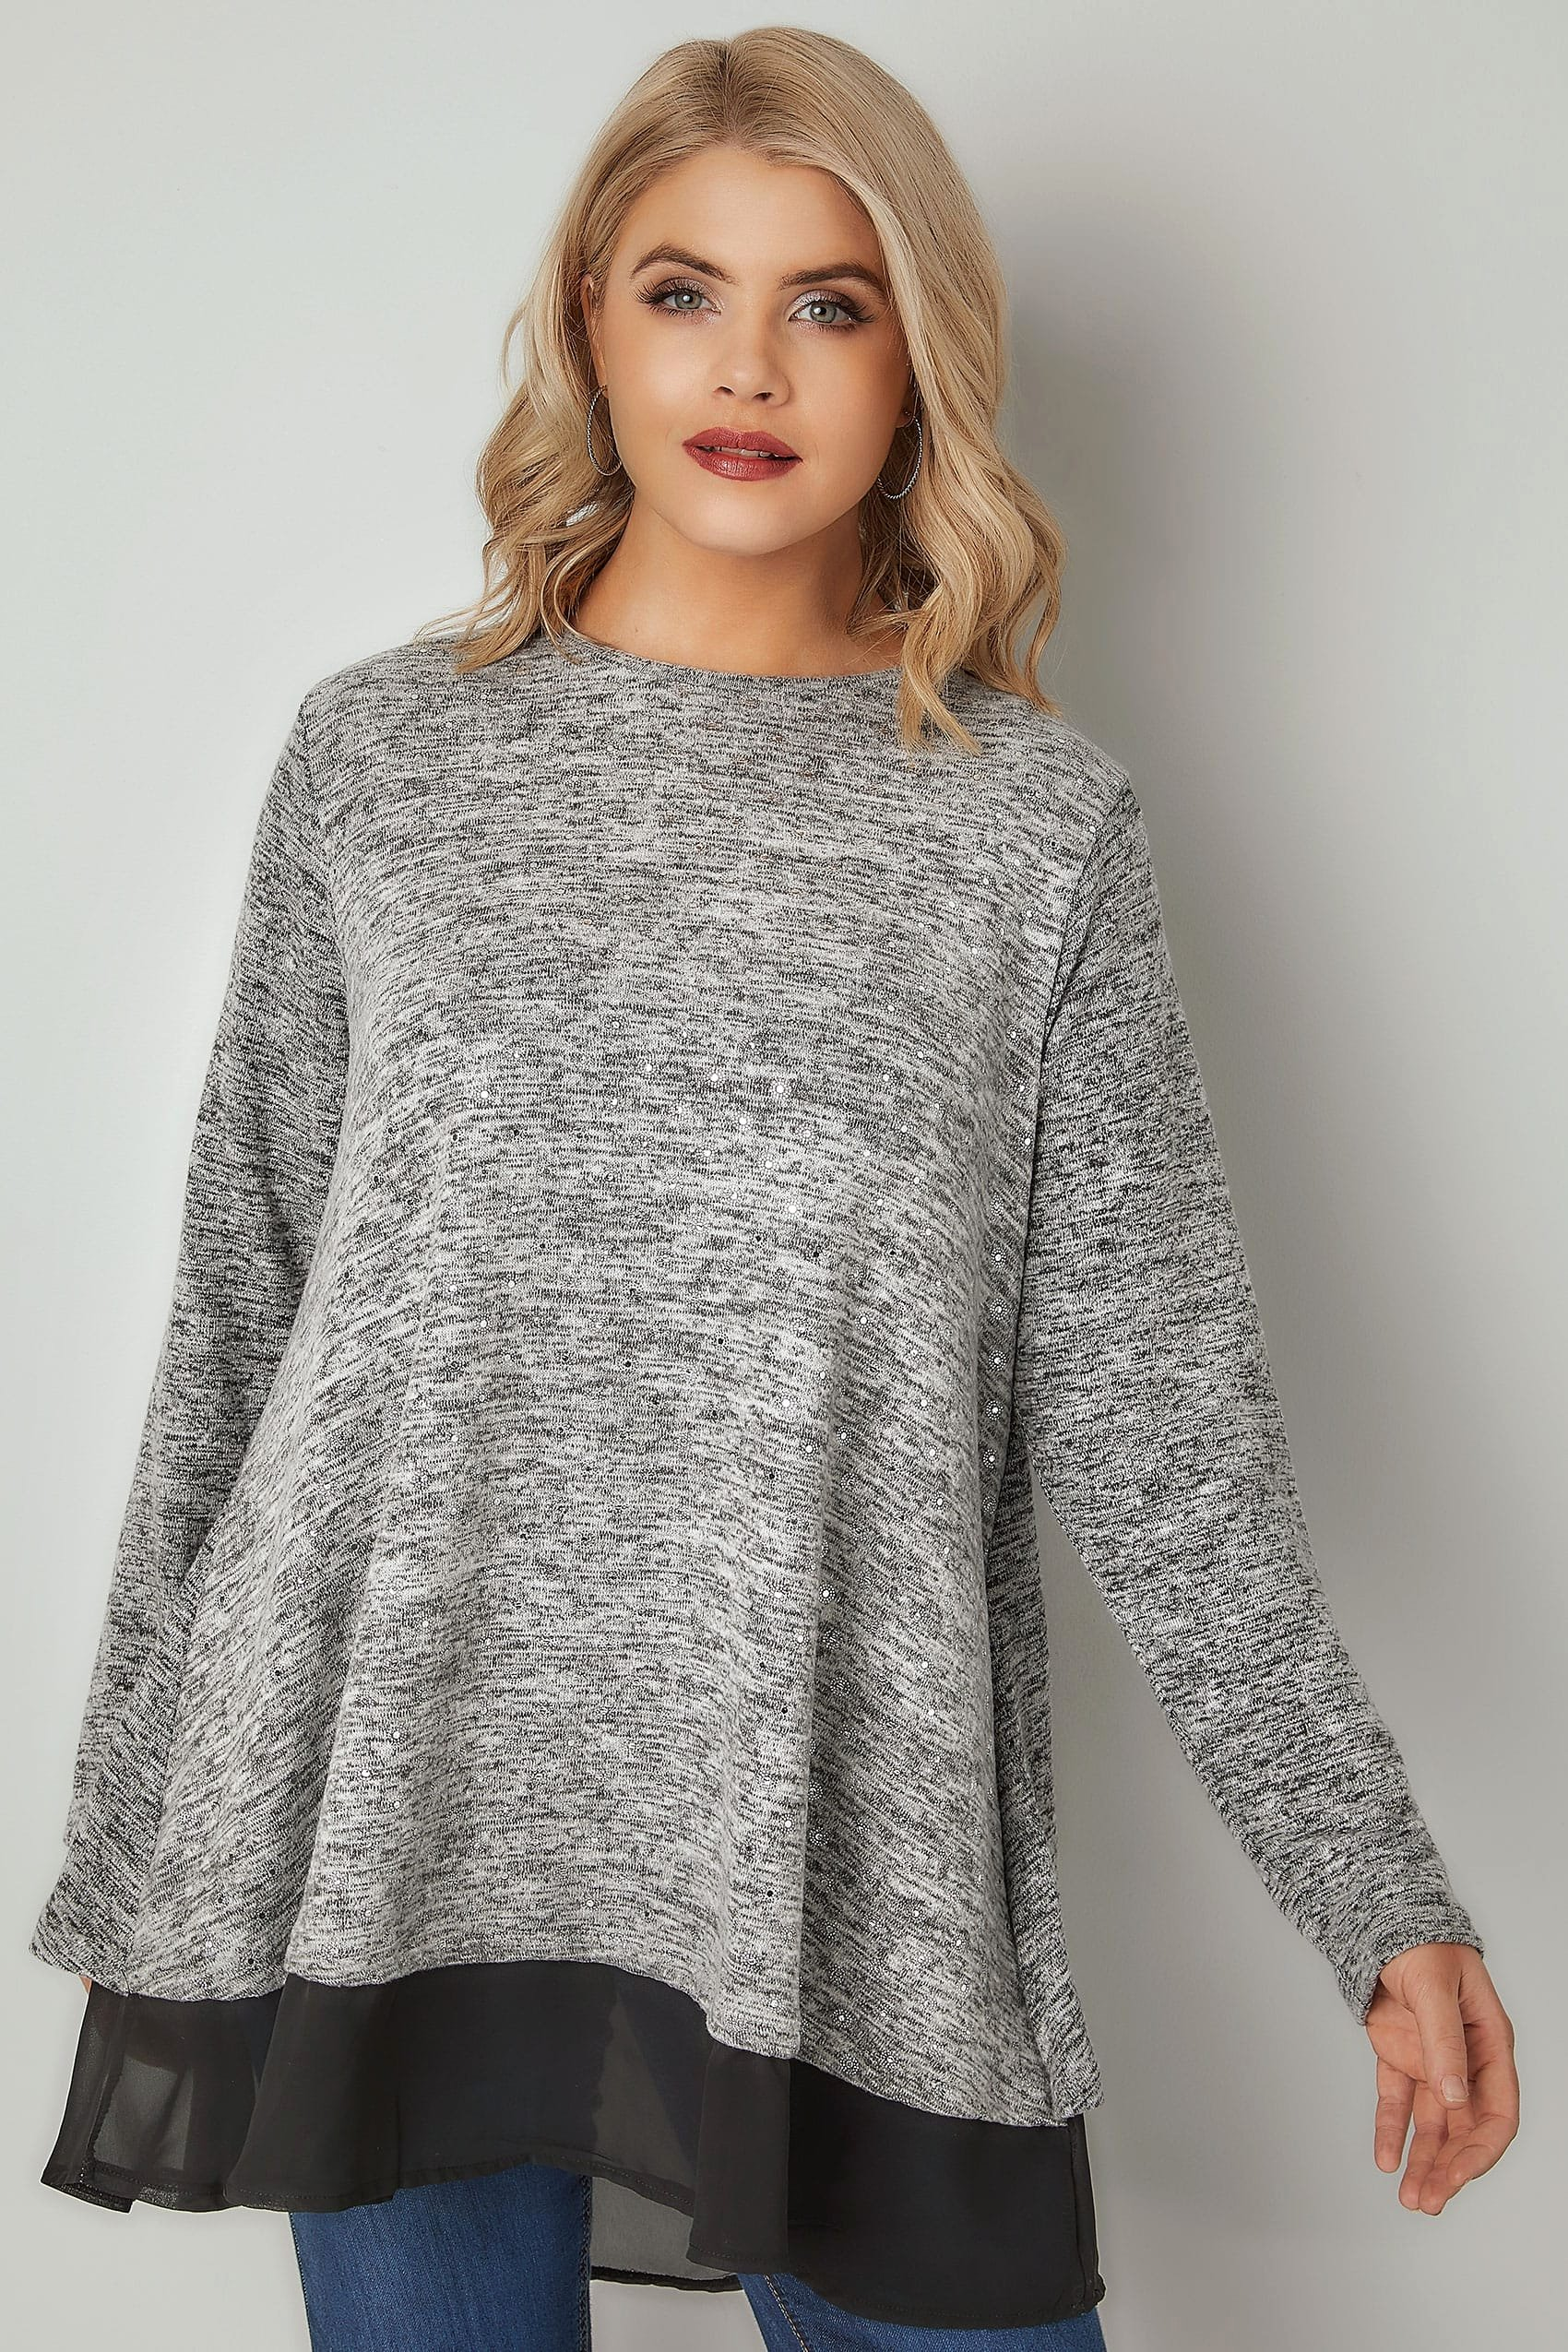 30 Day Review Template Luxury Grey Foil Print Knitted top with Split Back & Chiffon